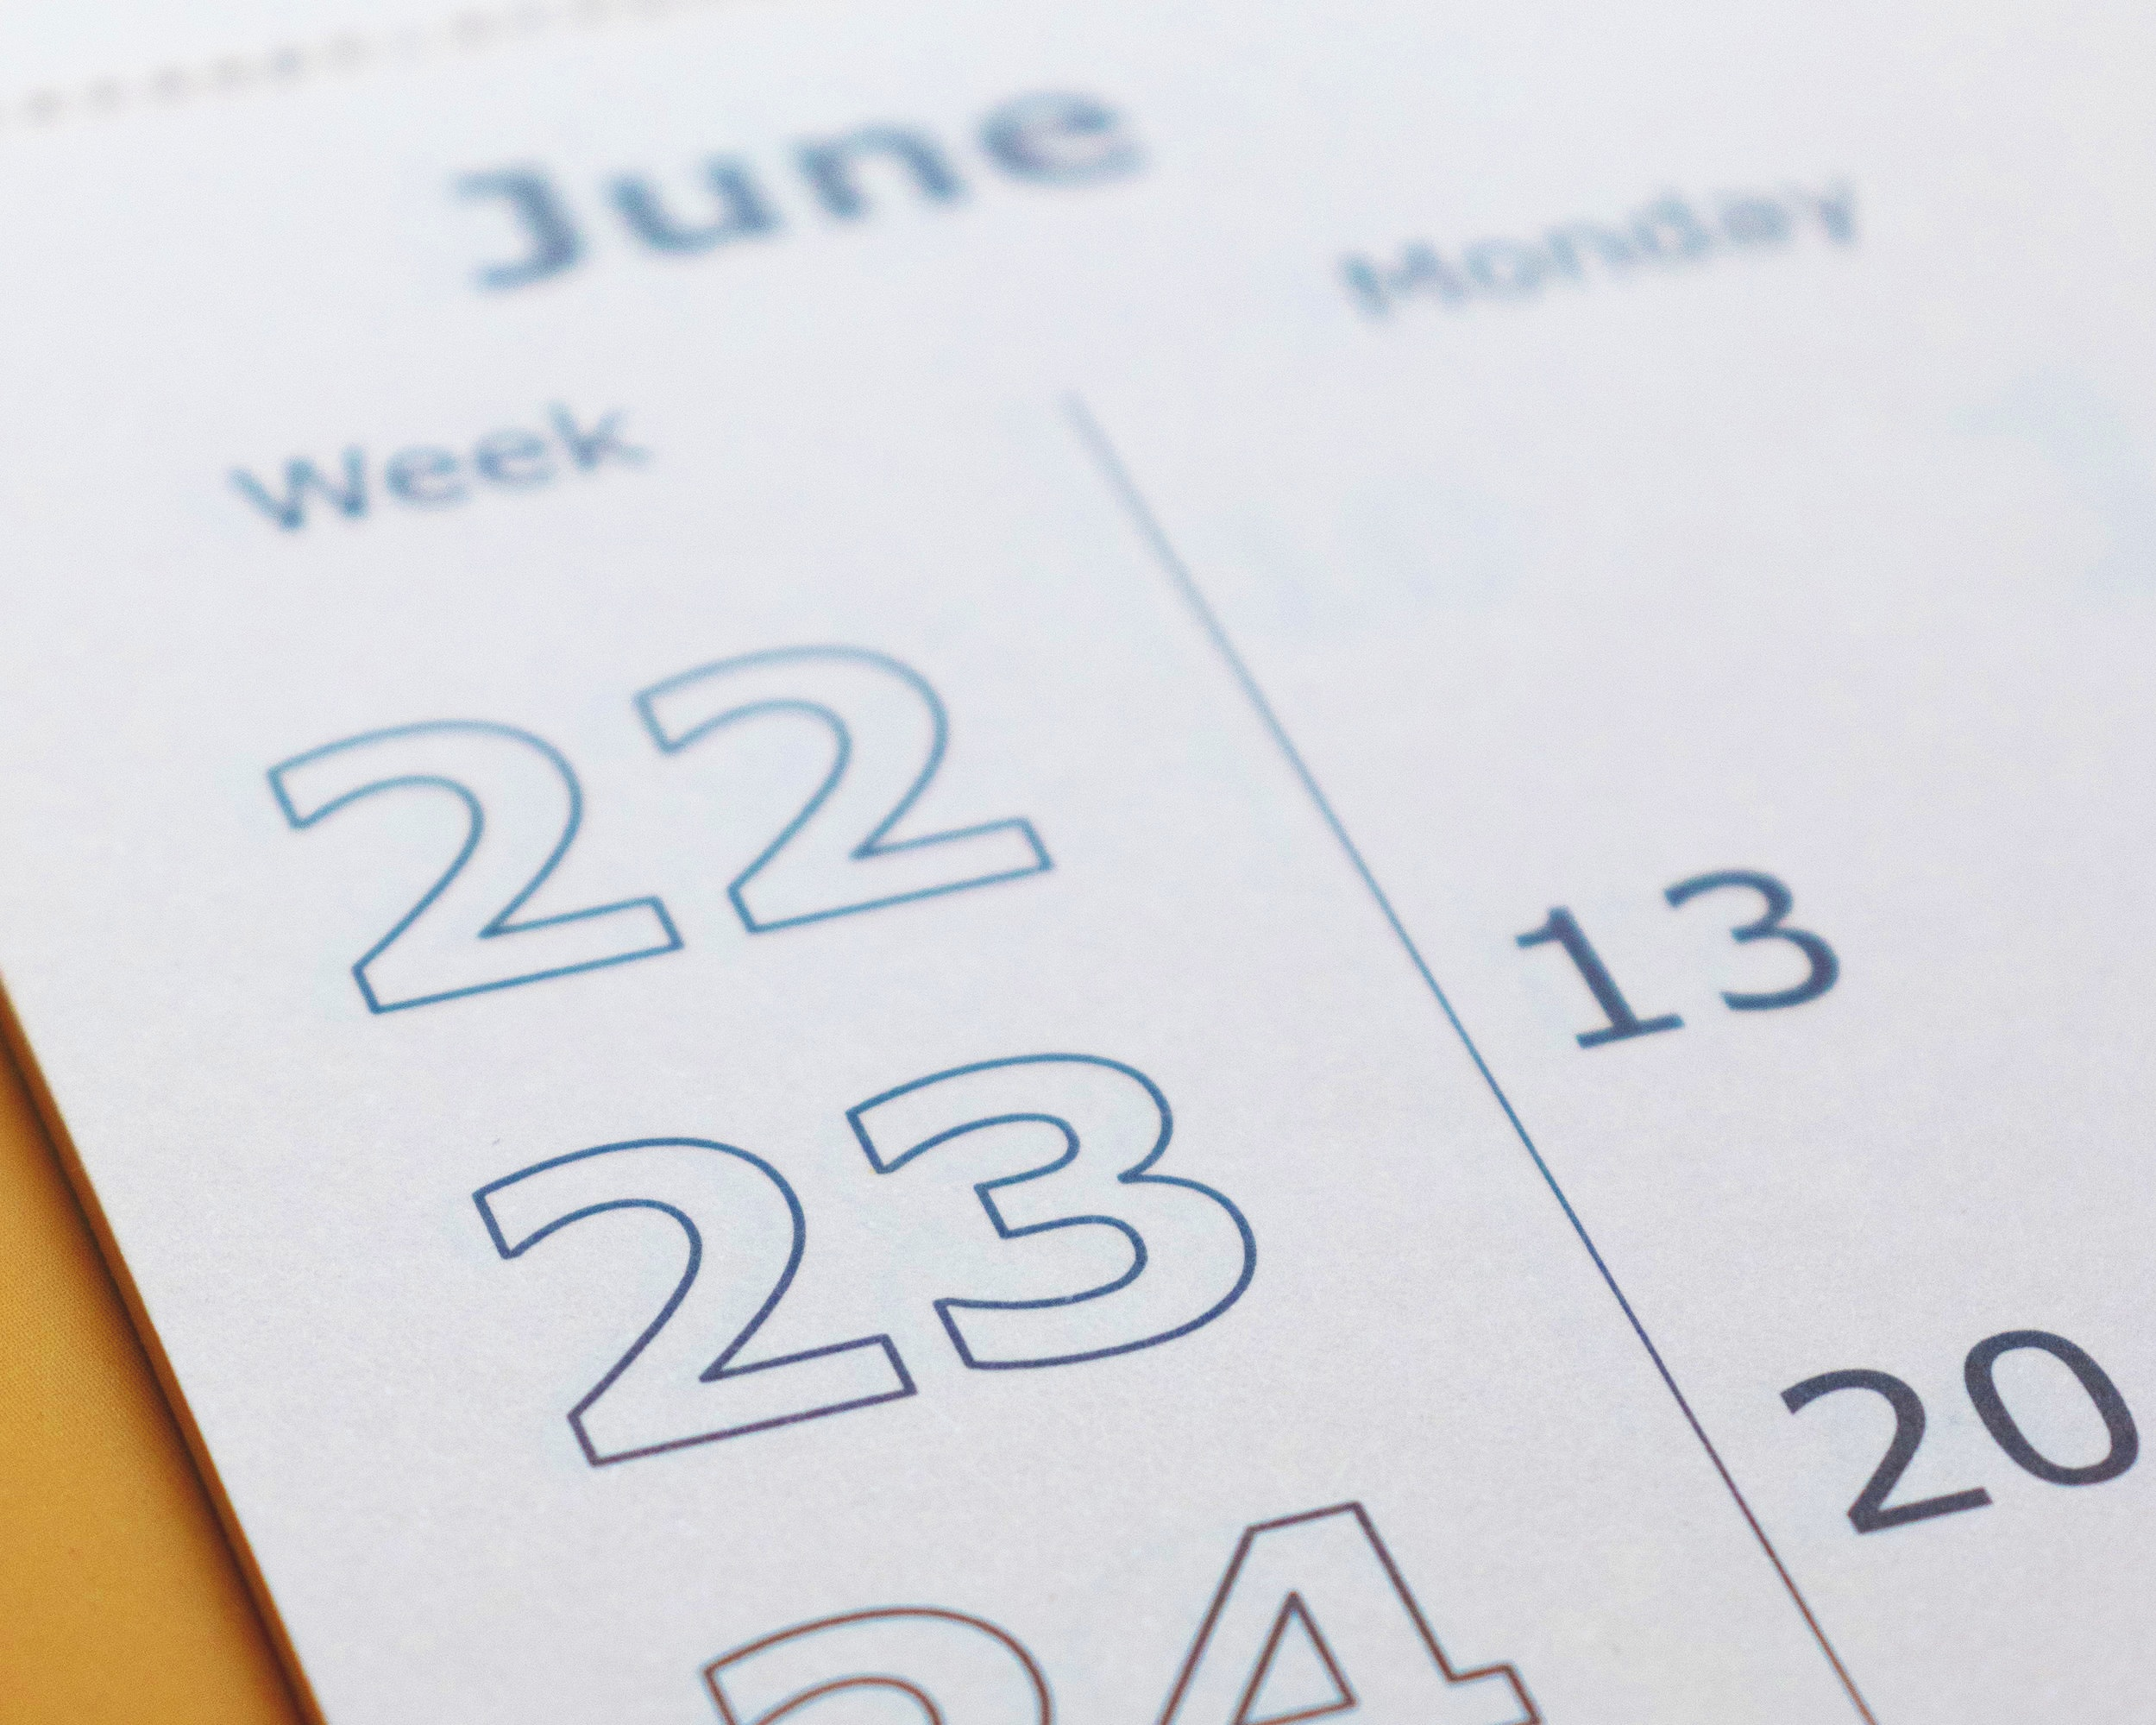 - Check here often for updated deadlines, events and weeks that Clearview has less availability.